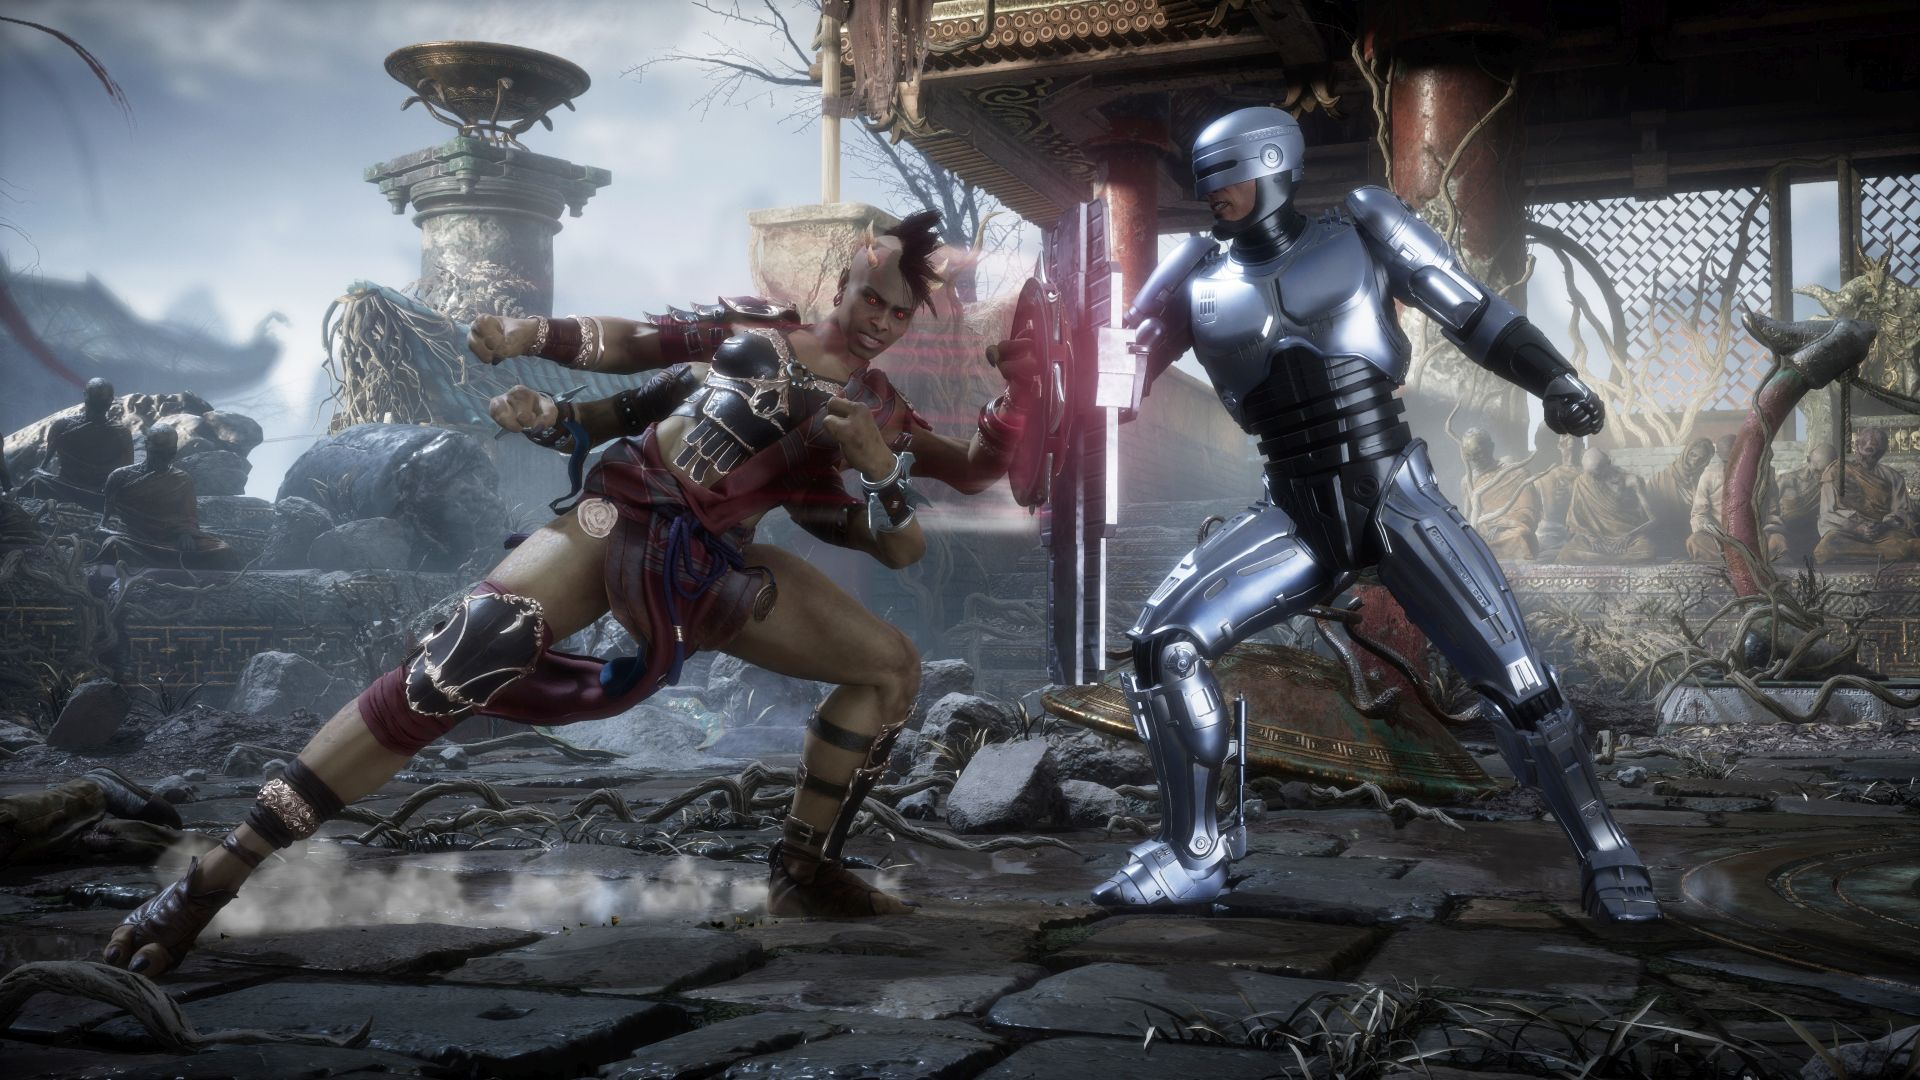 Mortal Kombat 11 Aftermath Celebrates Summer With New Skin Pack